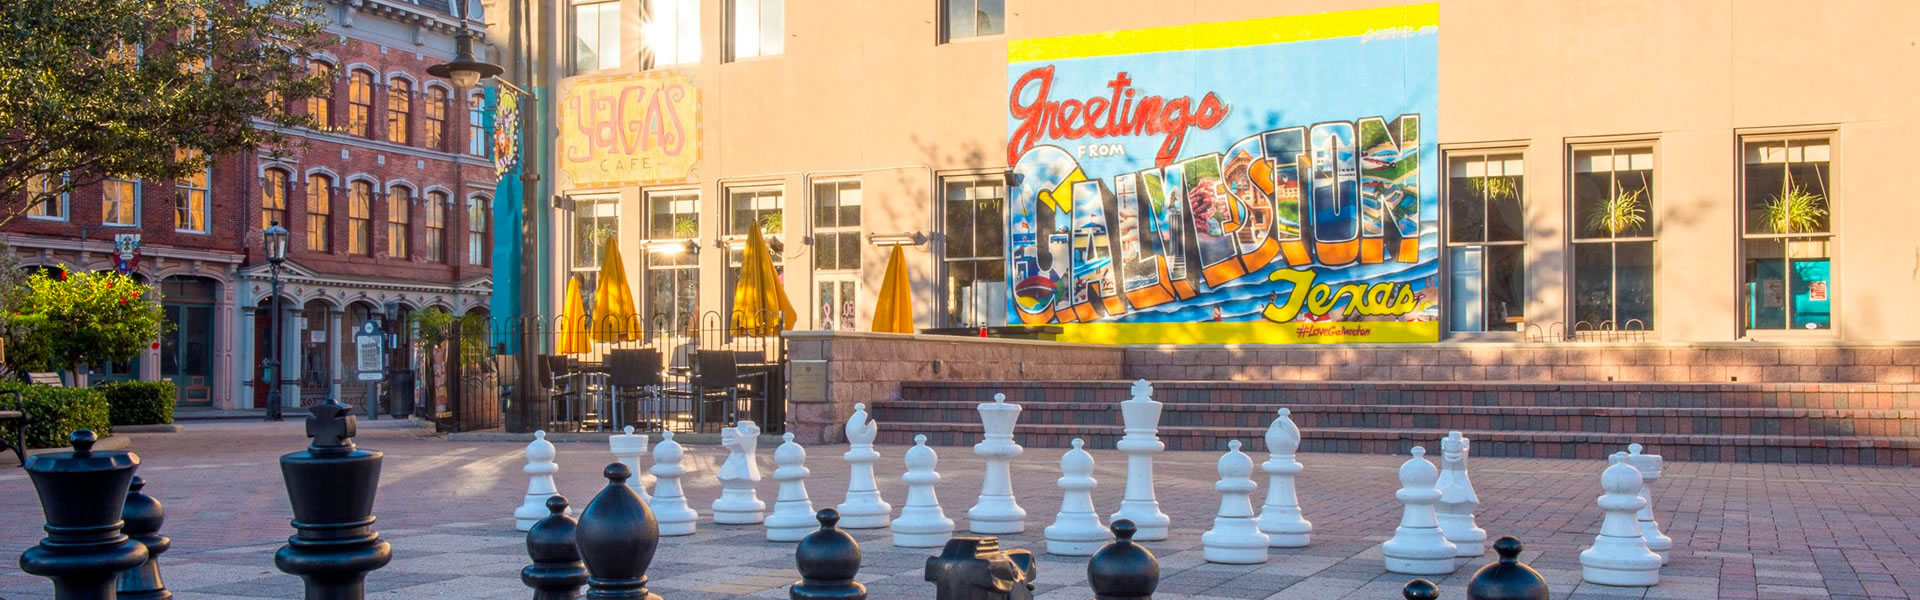 Saengerfest Park and the Giant Chess Board facing Yaga's